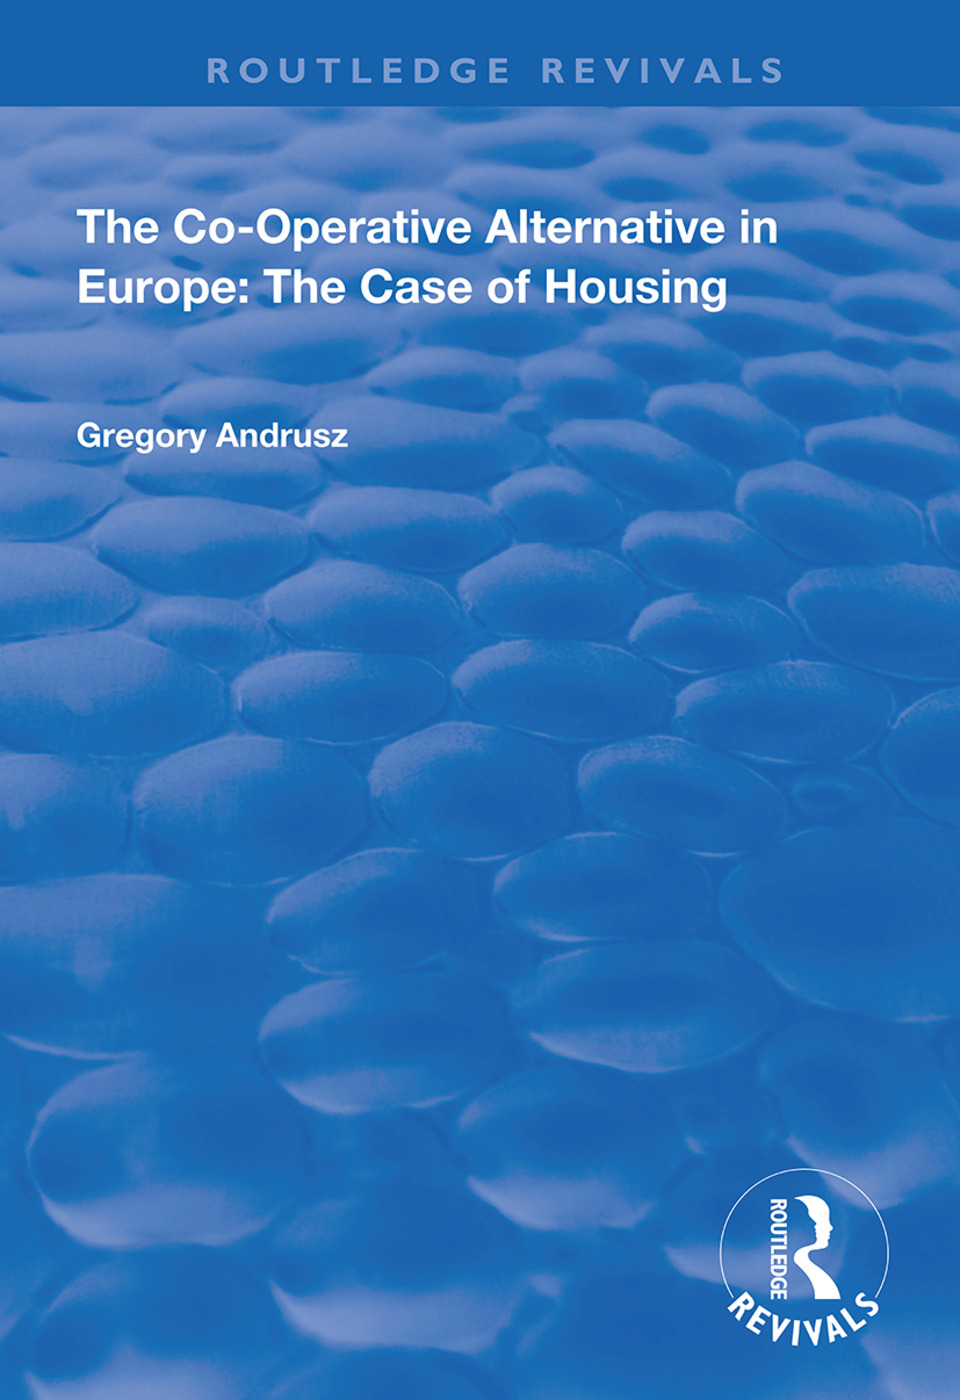 The Co-operative Alternative in Europe: The Case of Housing book cover